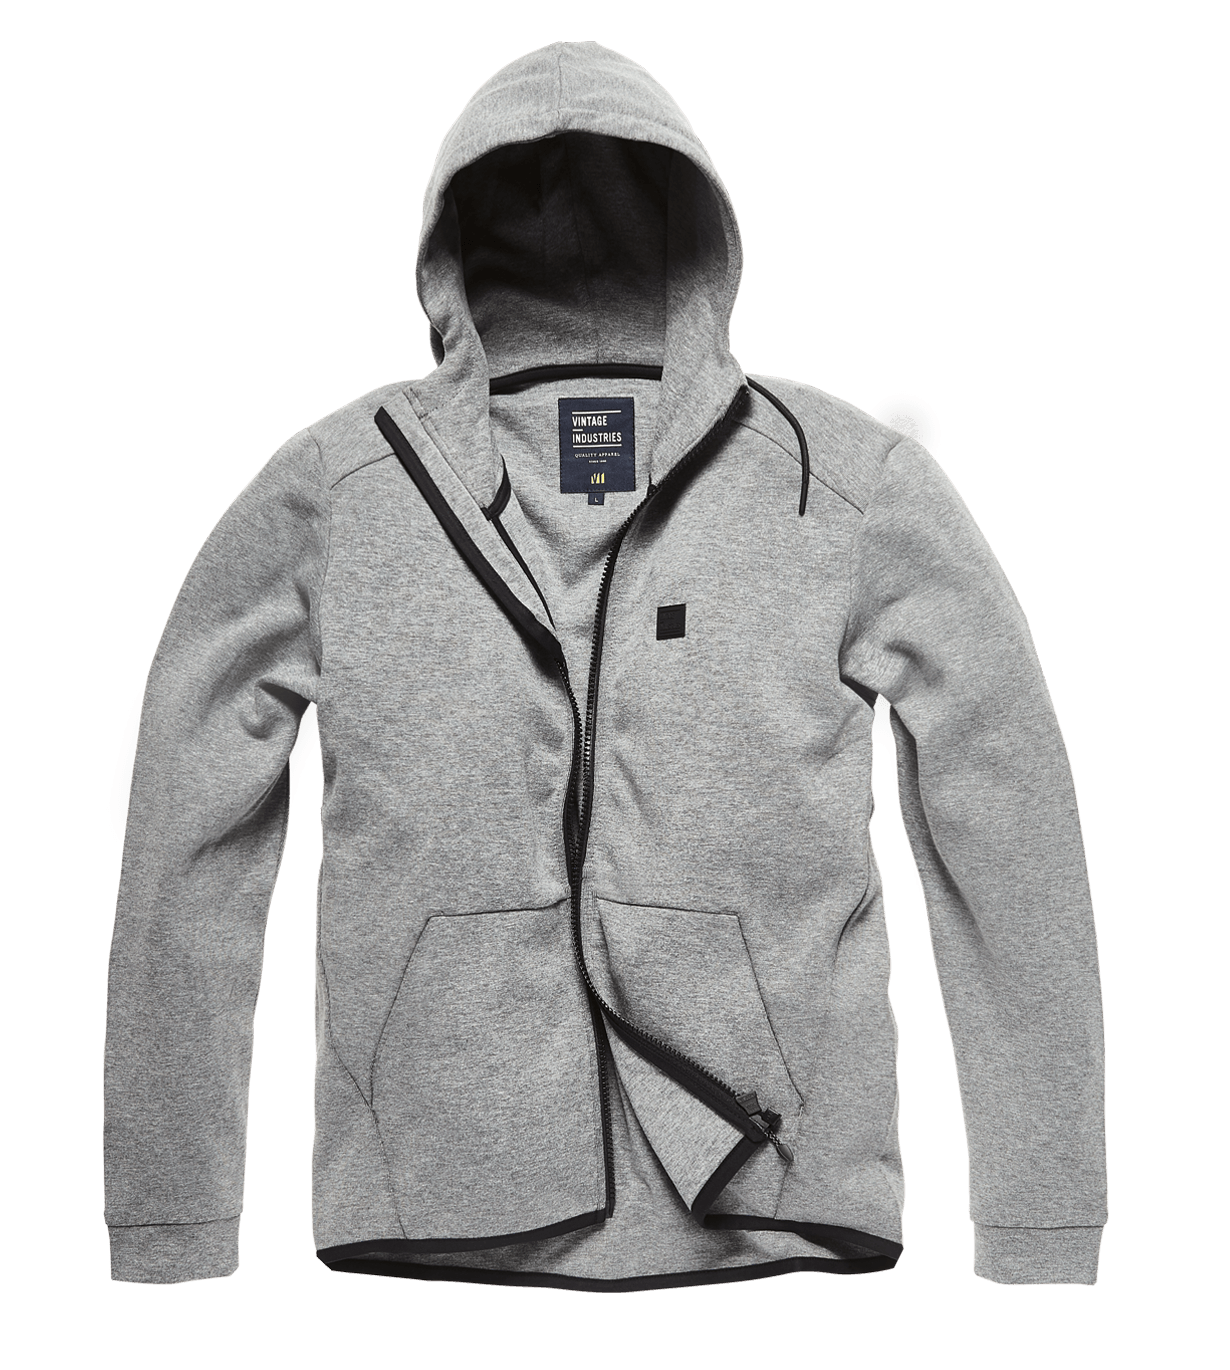 31101 - Albury hooded sweatshirt